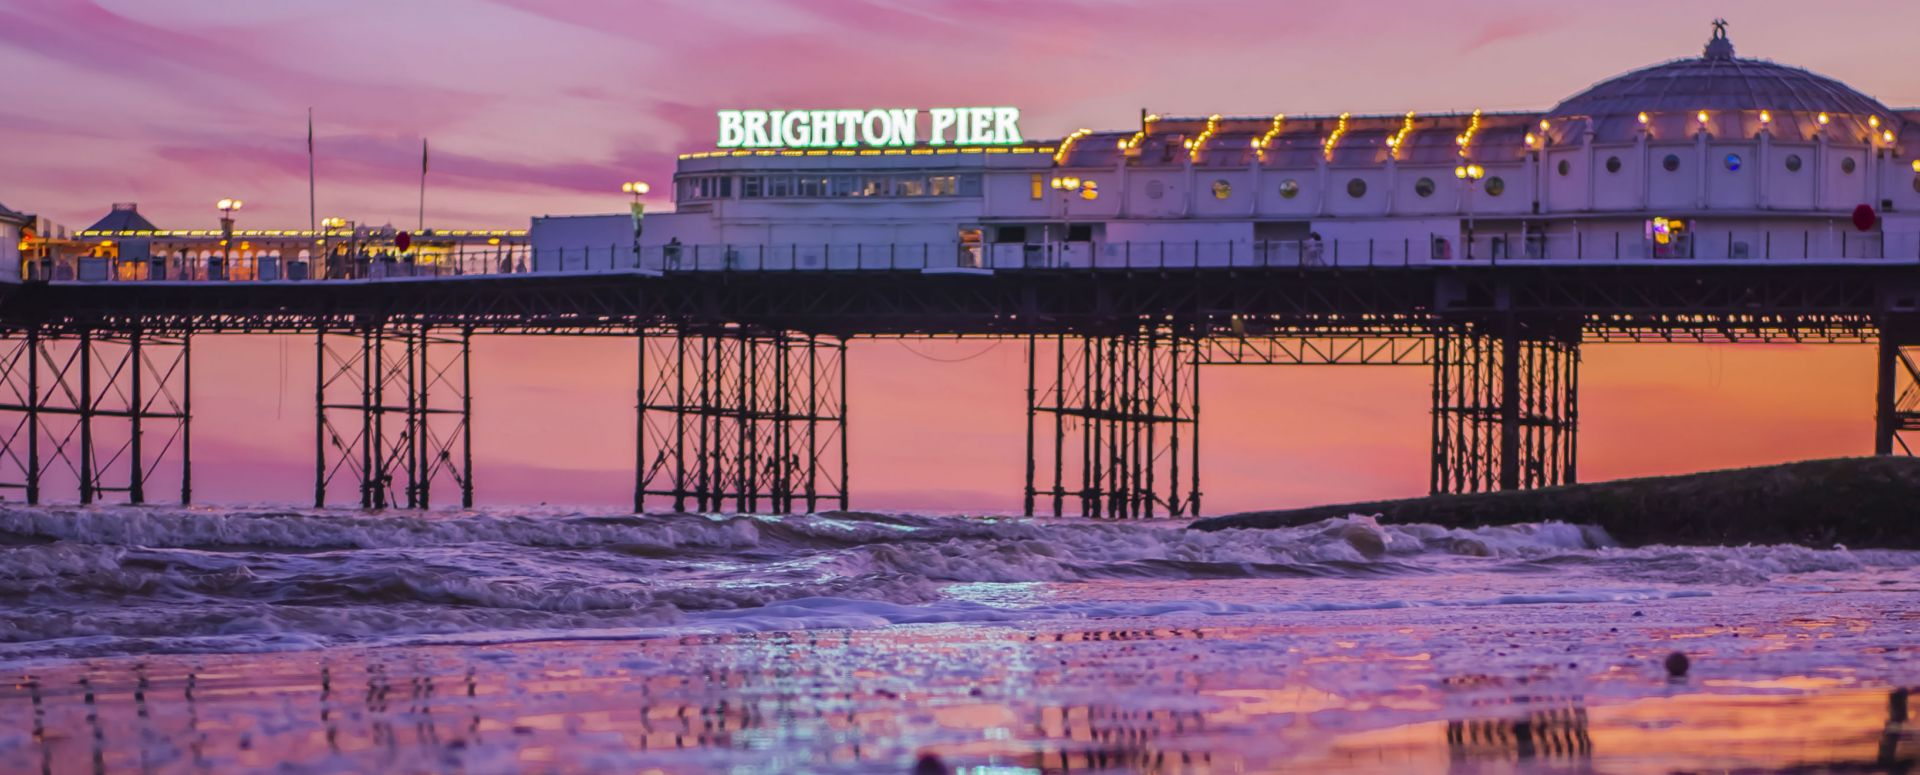 Brighton Pier bathed in the light of a vivid sunset Brighton, East Sussex